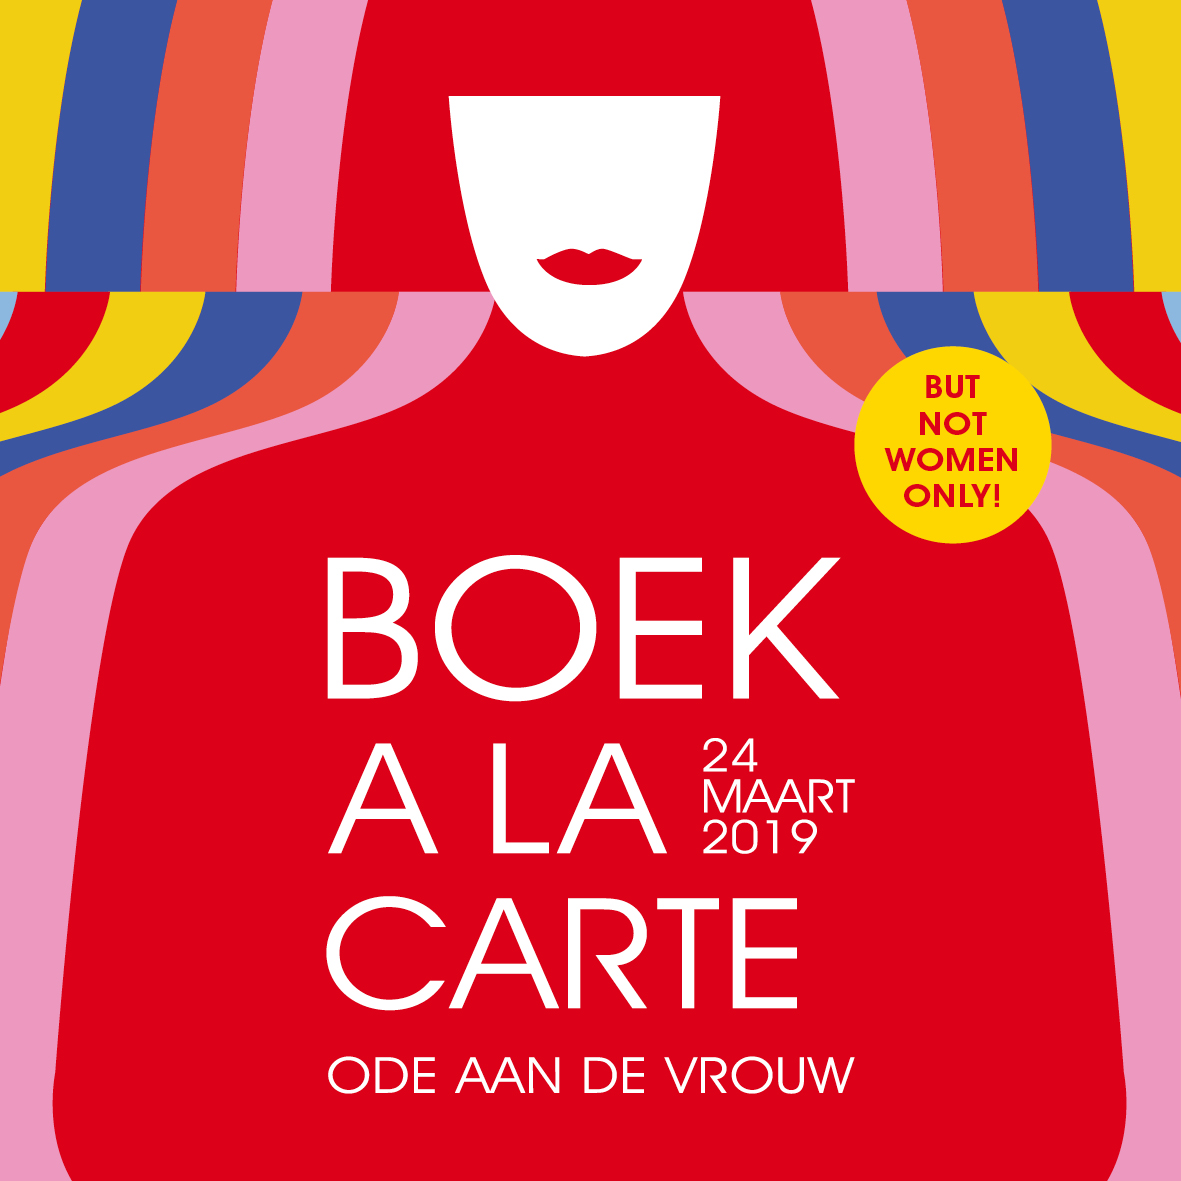 BOEK A LA CARTE - ODE AAN DE VROUW 'BUT NOT WOMEN ONLY'